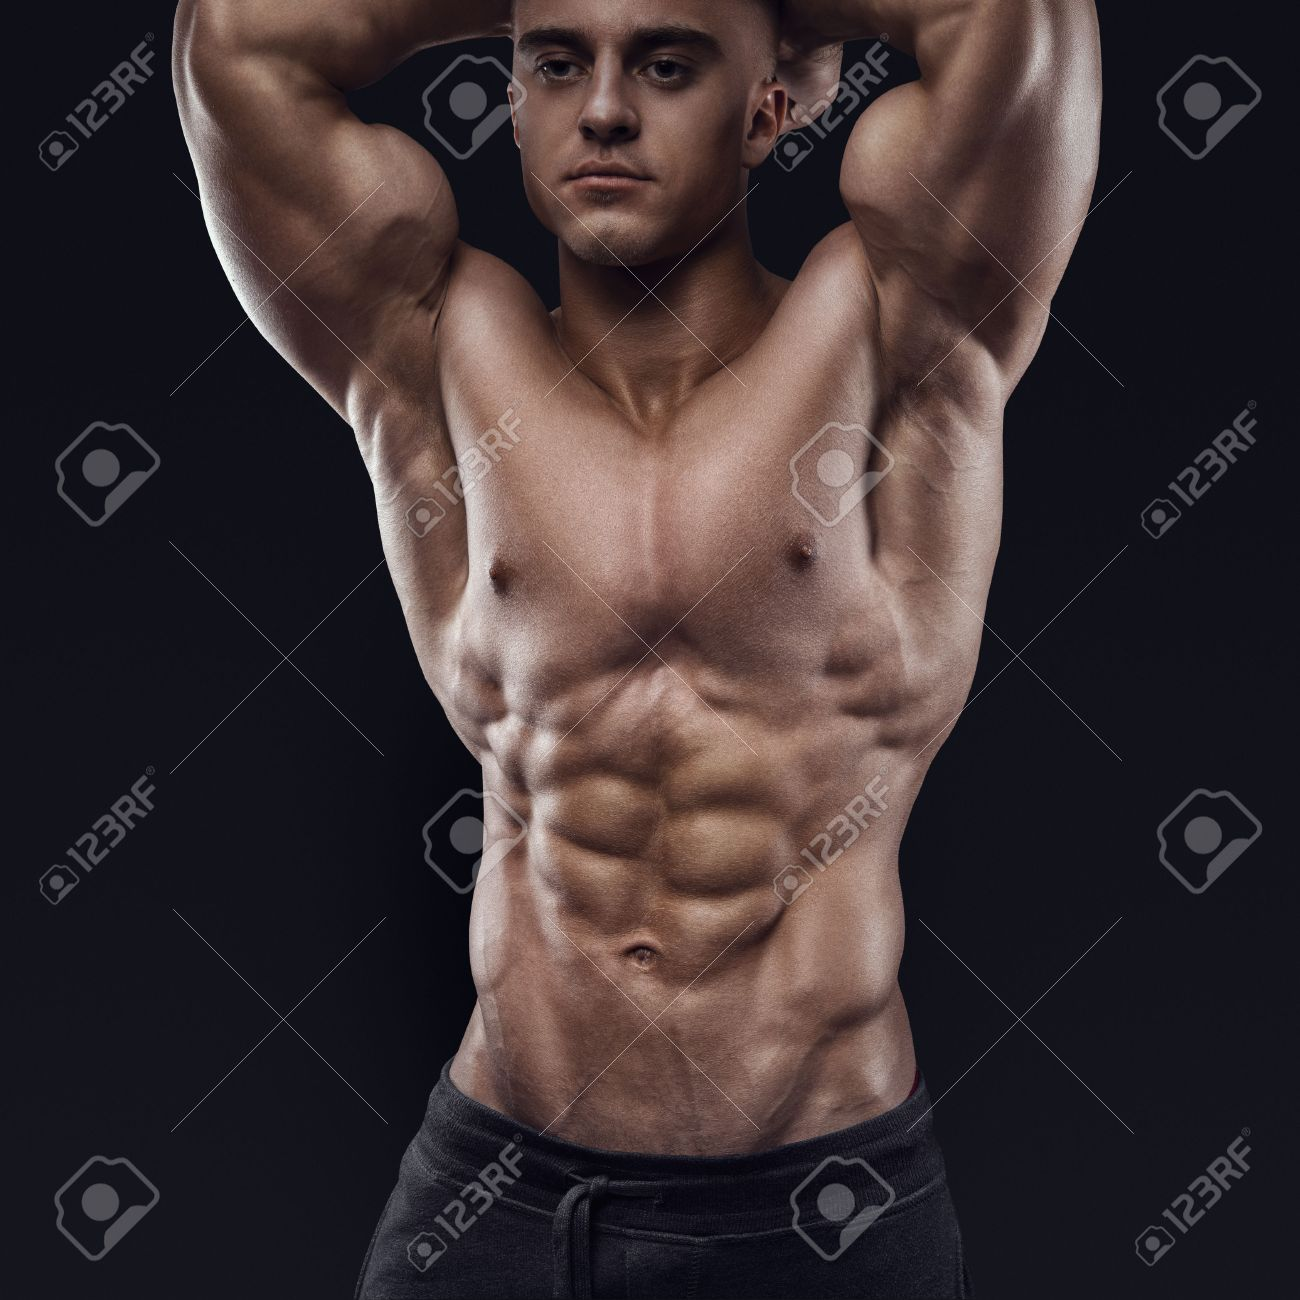 Sexy shirtless male model young bodybuilder posing over black background studio shot on black background